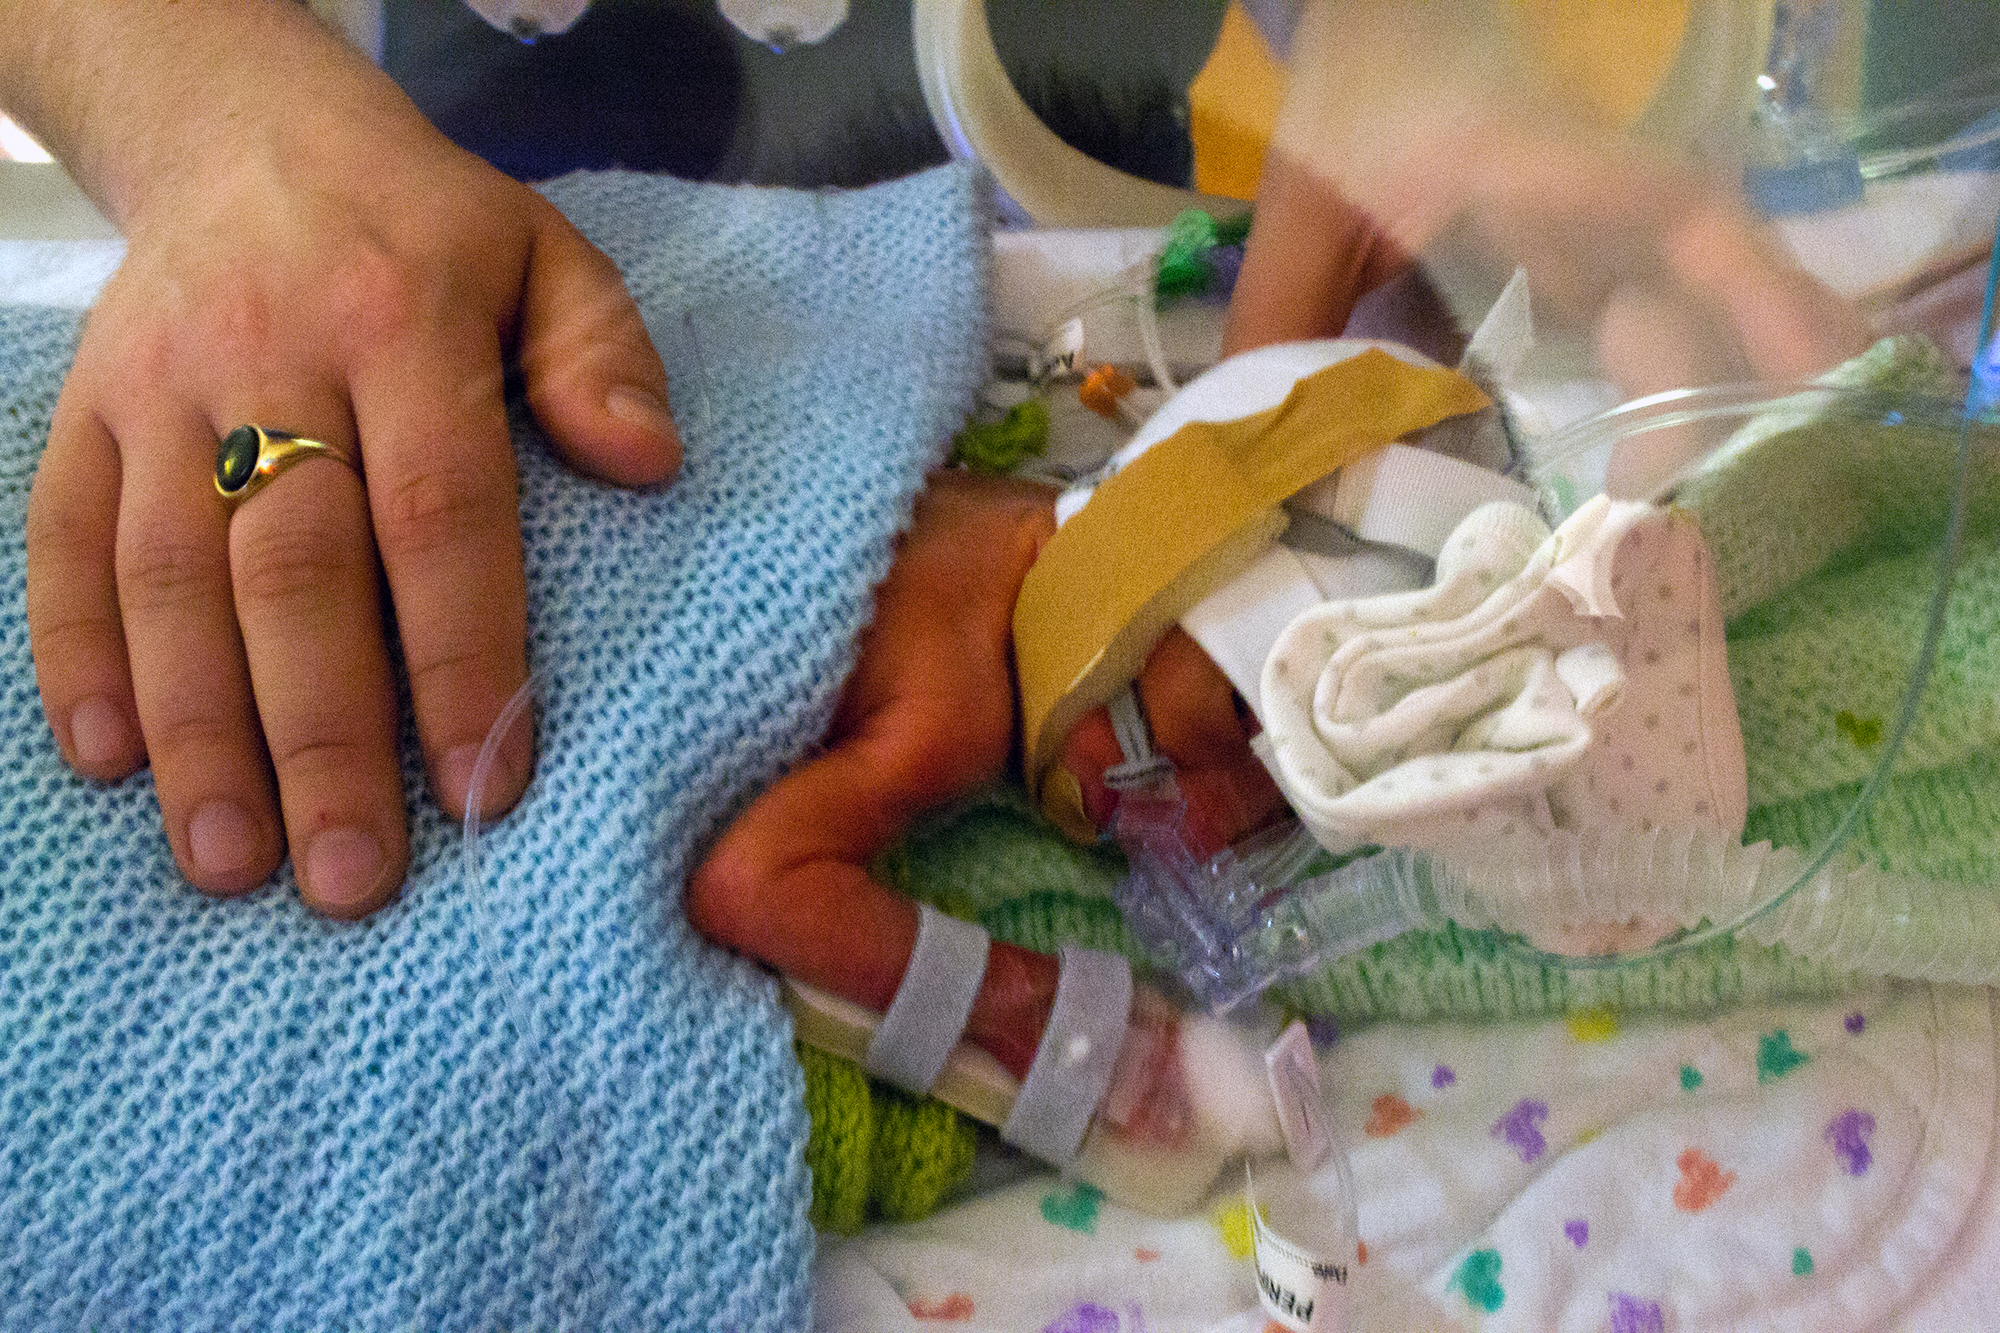 Tiny baby in an incubator with breathing apparatus on. Covered with a blanket, and daddy's hand on his back.